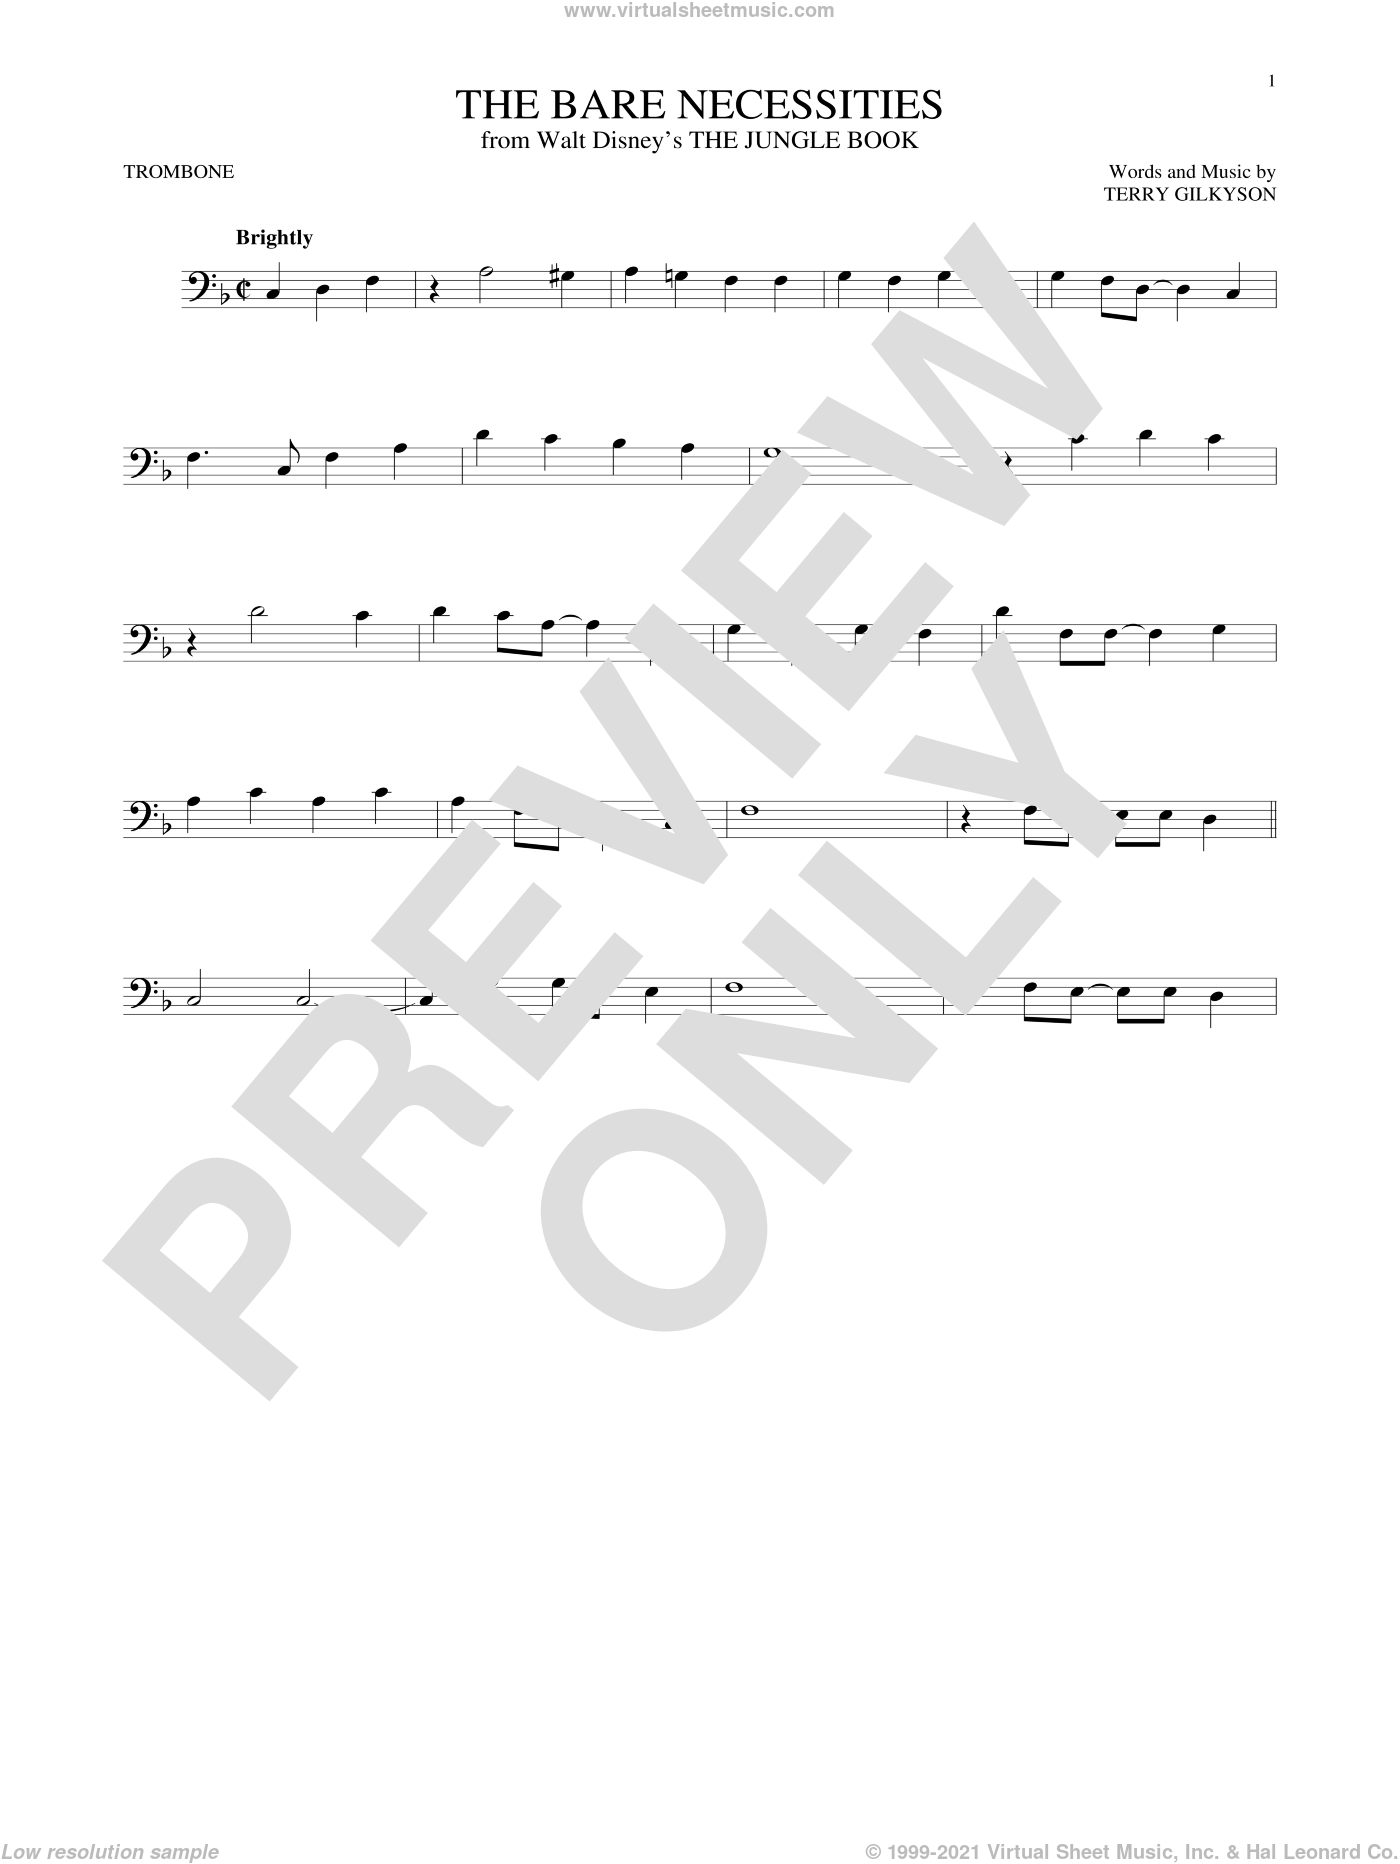 The Bare Necessities sheet music for trombone solo by Terry Gilkyson